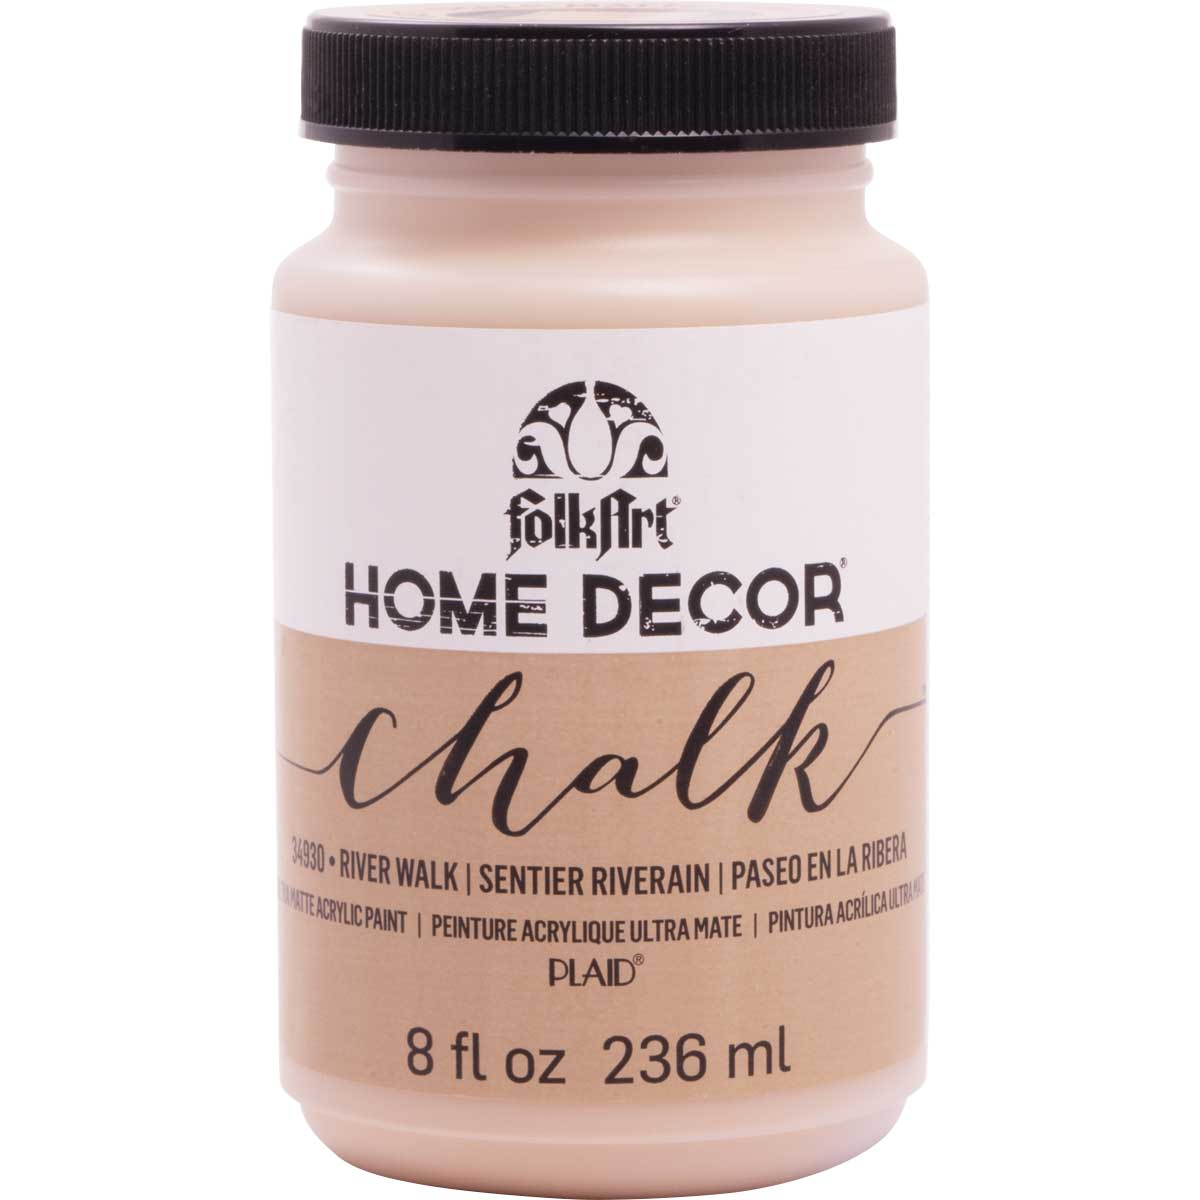 FolkArt ® Home Decor™ Chalk - River Walk, 8 oz. - 34930